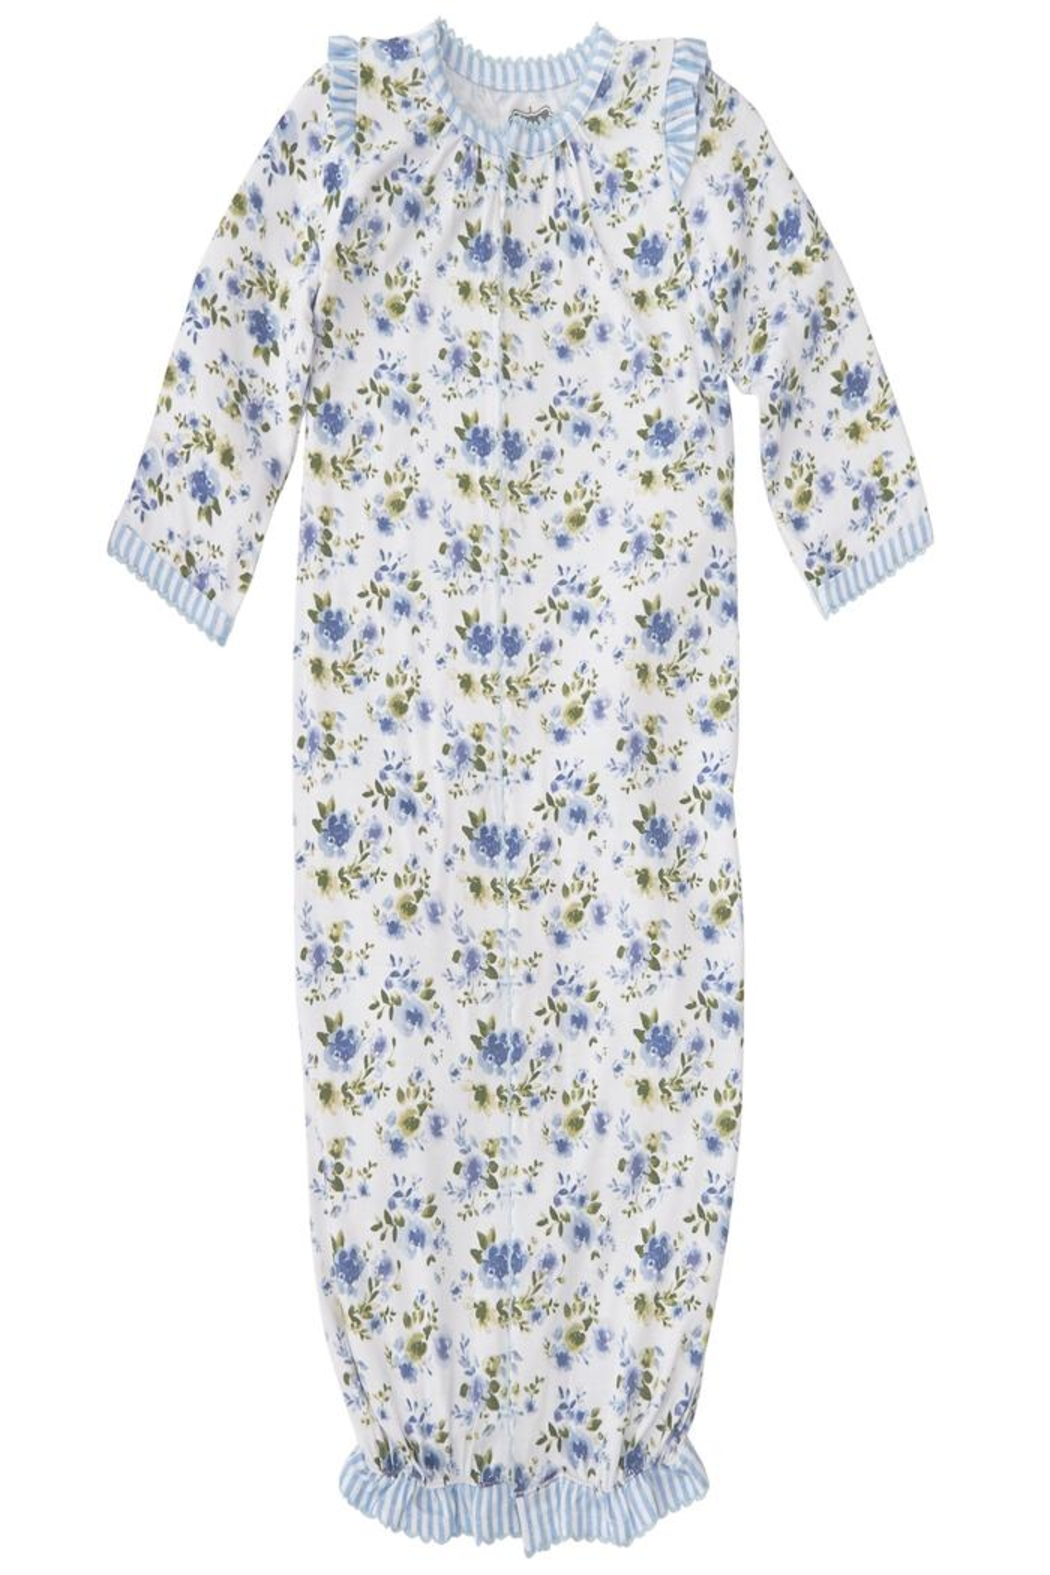 Mud Pie Floral Convertible Gown from Maryland by Artisans Gallery ...